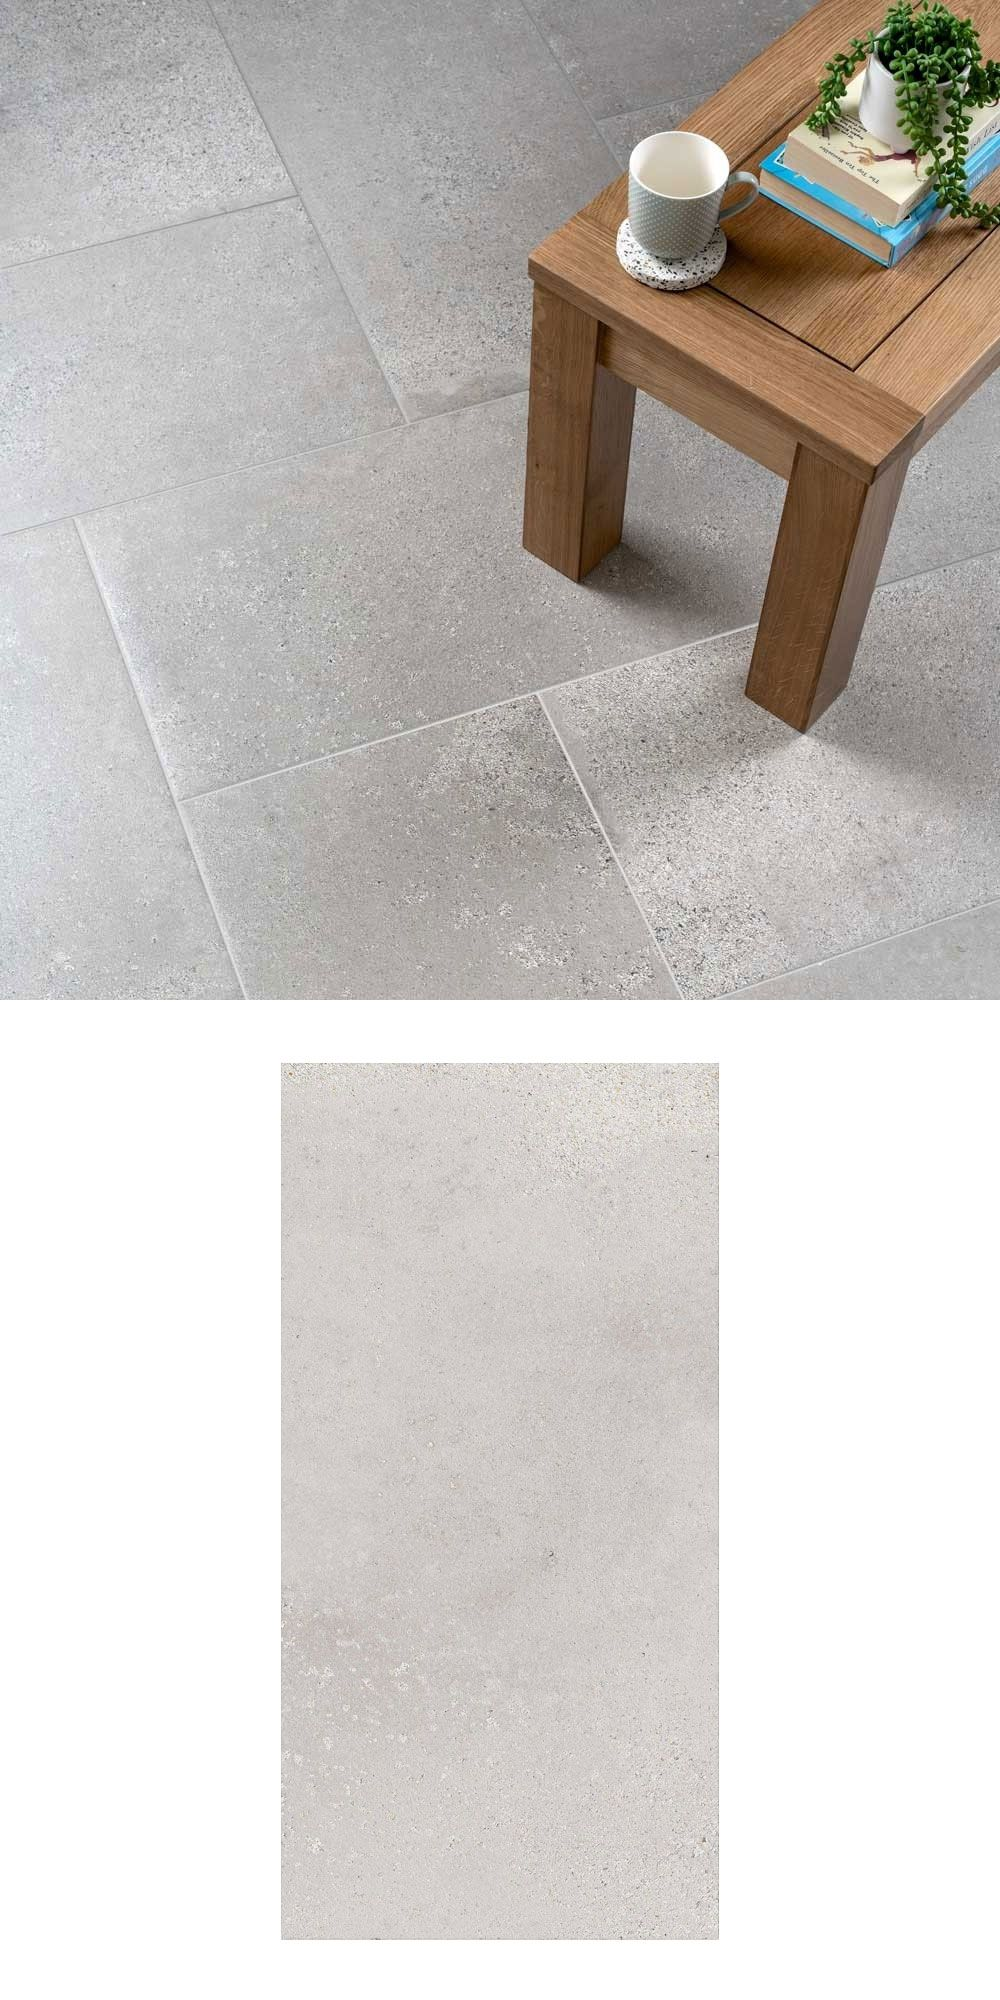 Inspired By Natural Limestone These Harrogate Mist Tiles Mimic Flecks Of Fossils And Intricate Shales They Re Ideal Fo With Images Tiles Grey Wall Tiles White Wall Tiles